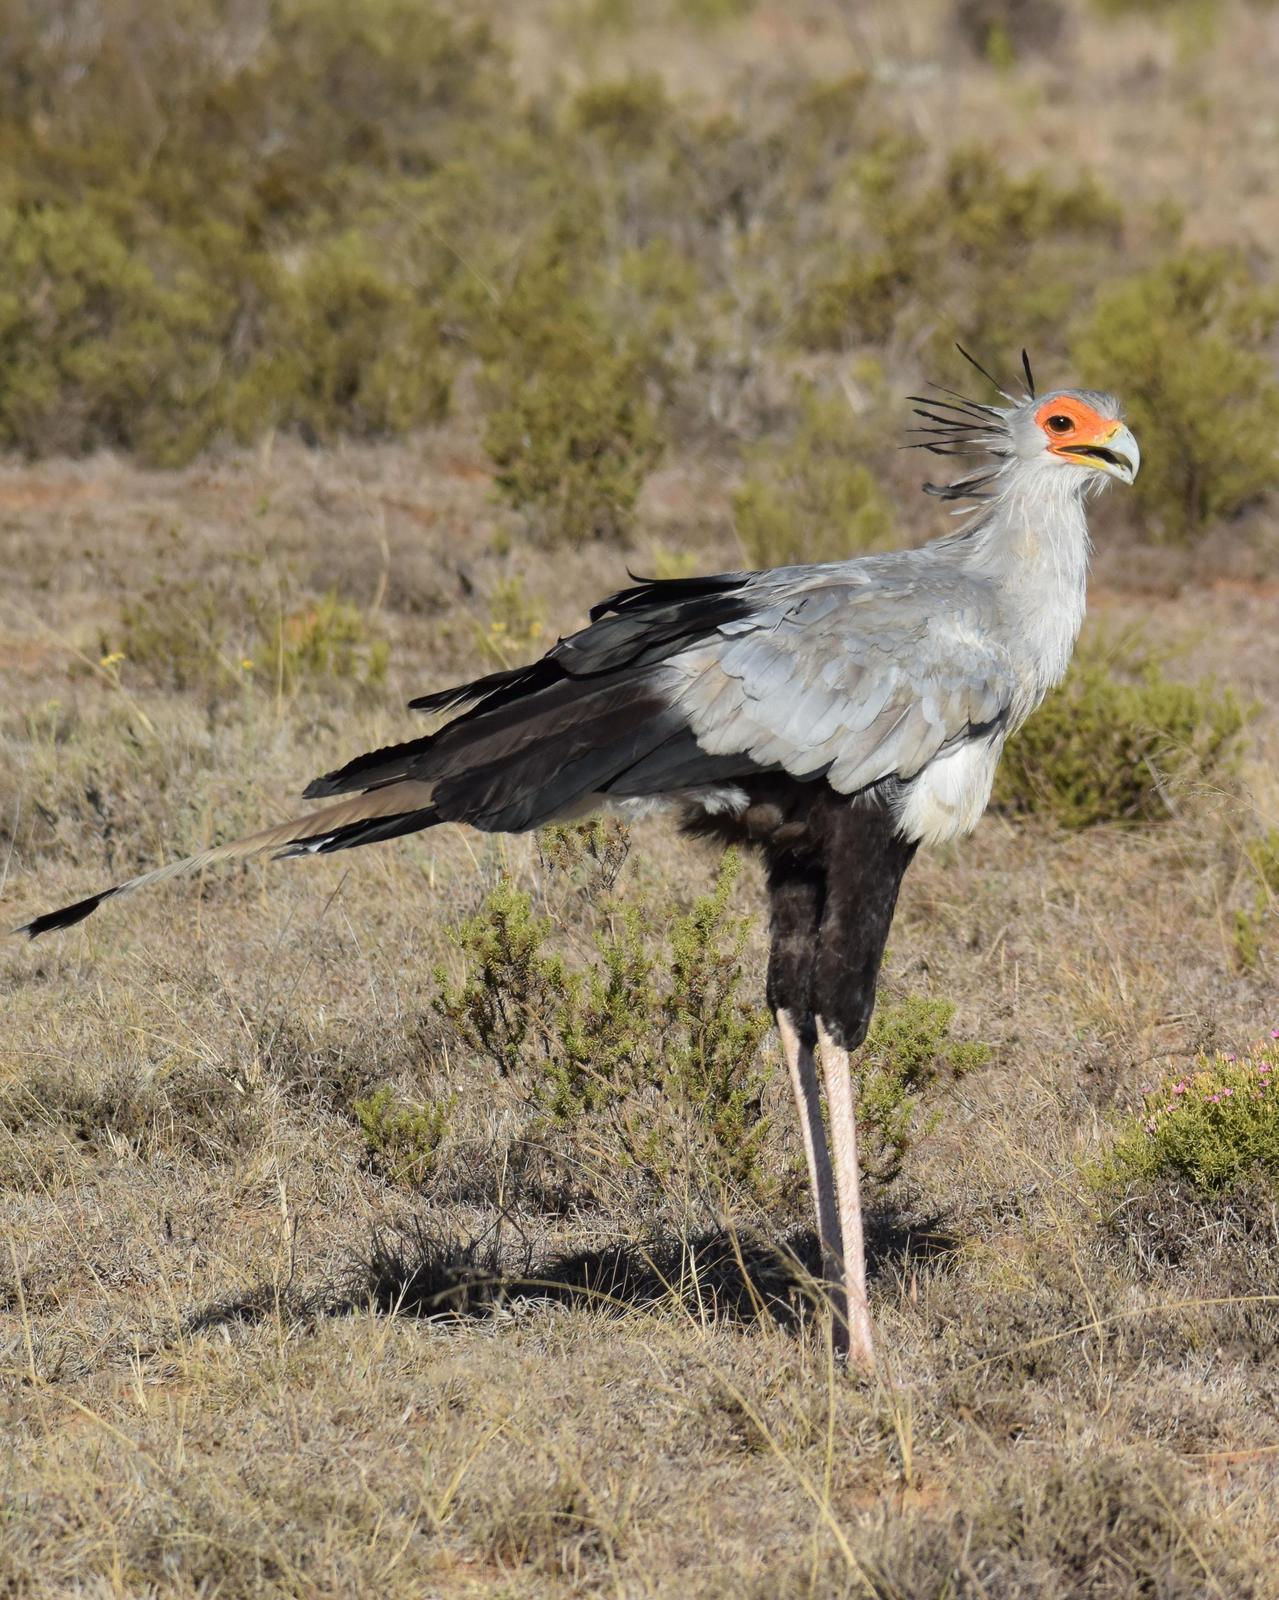 Secretarybird Photo by Steve Percival